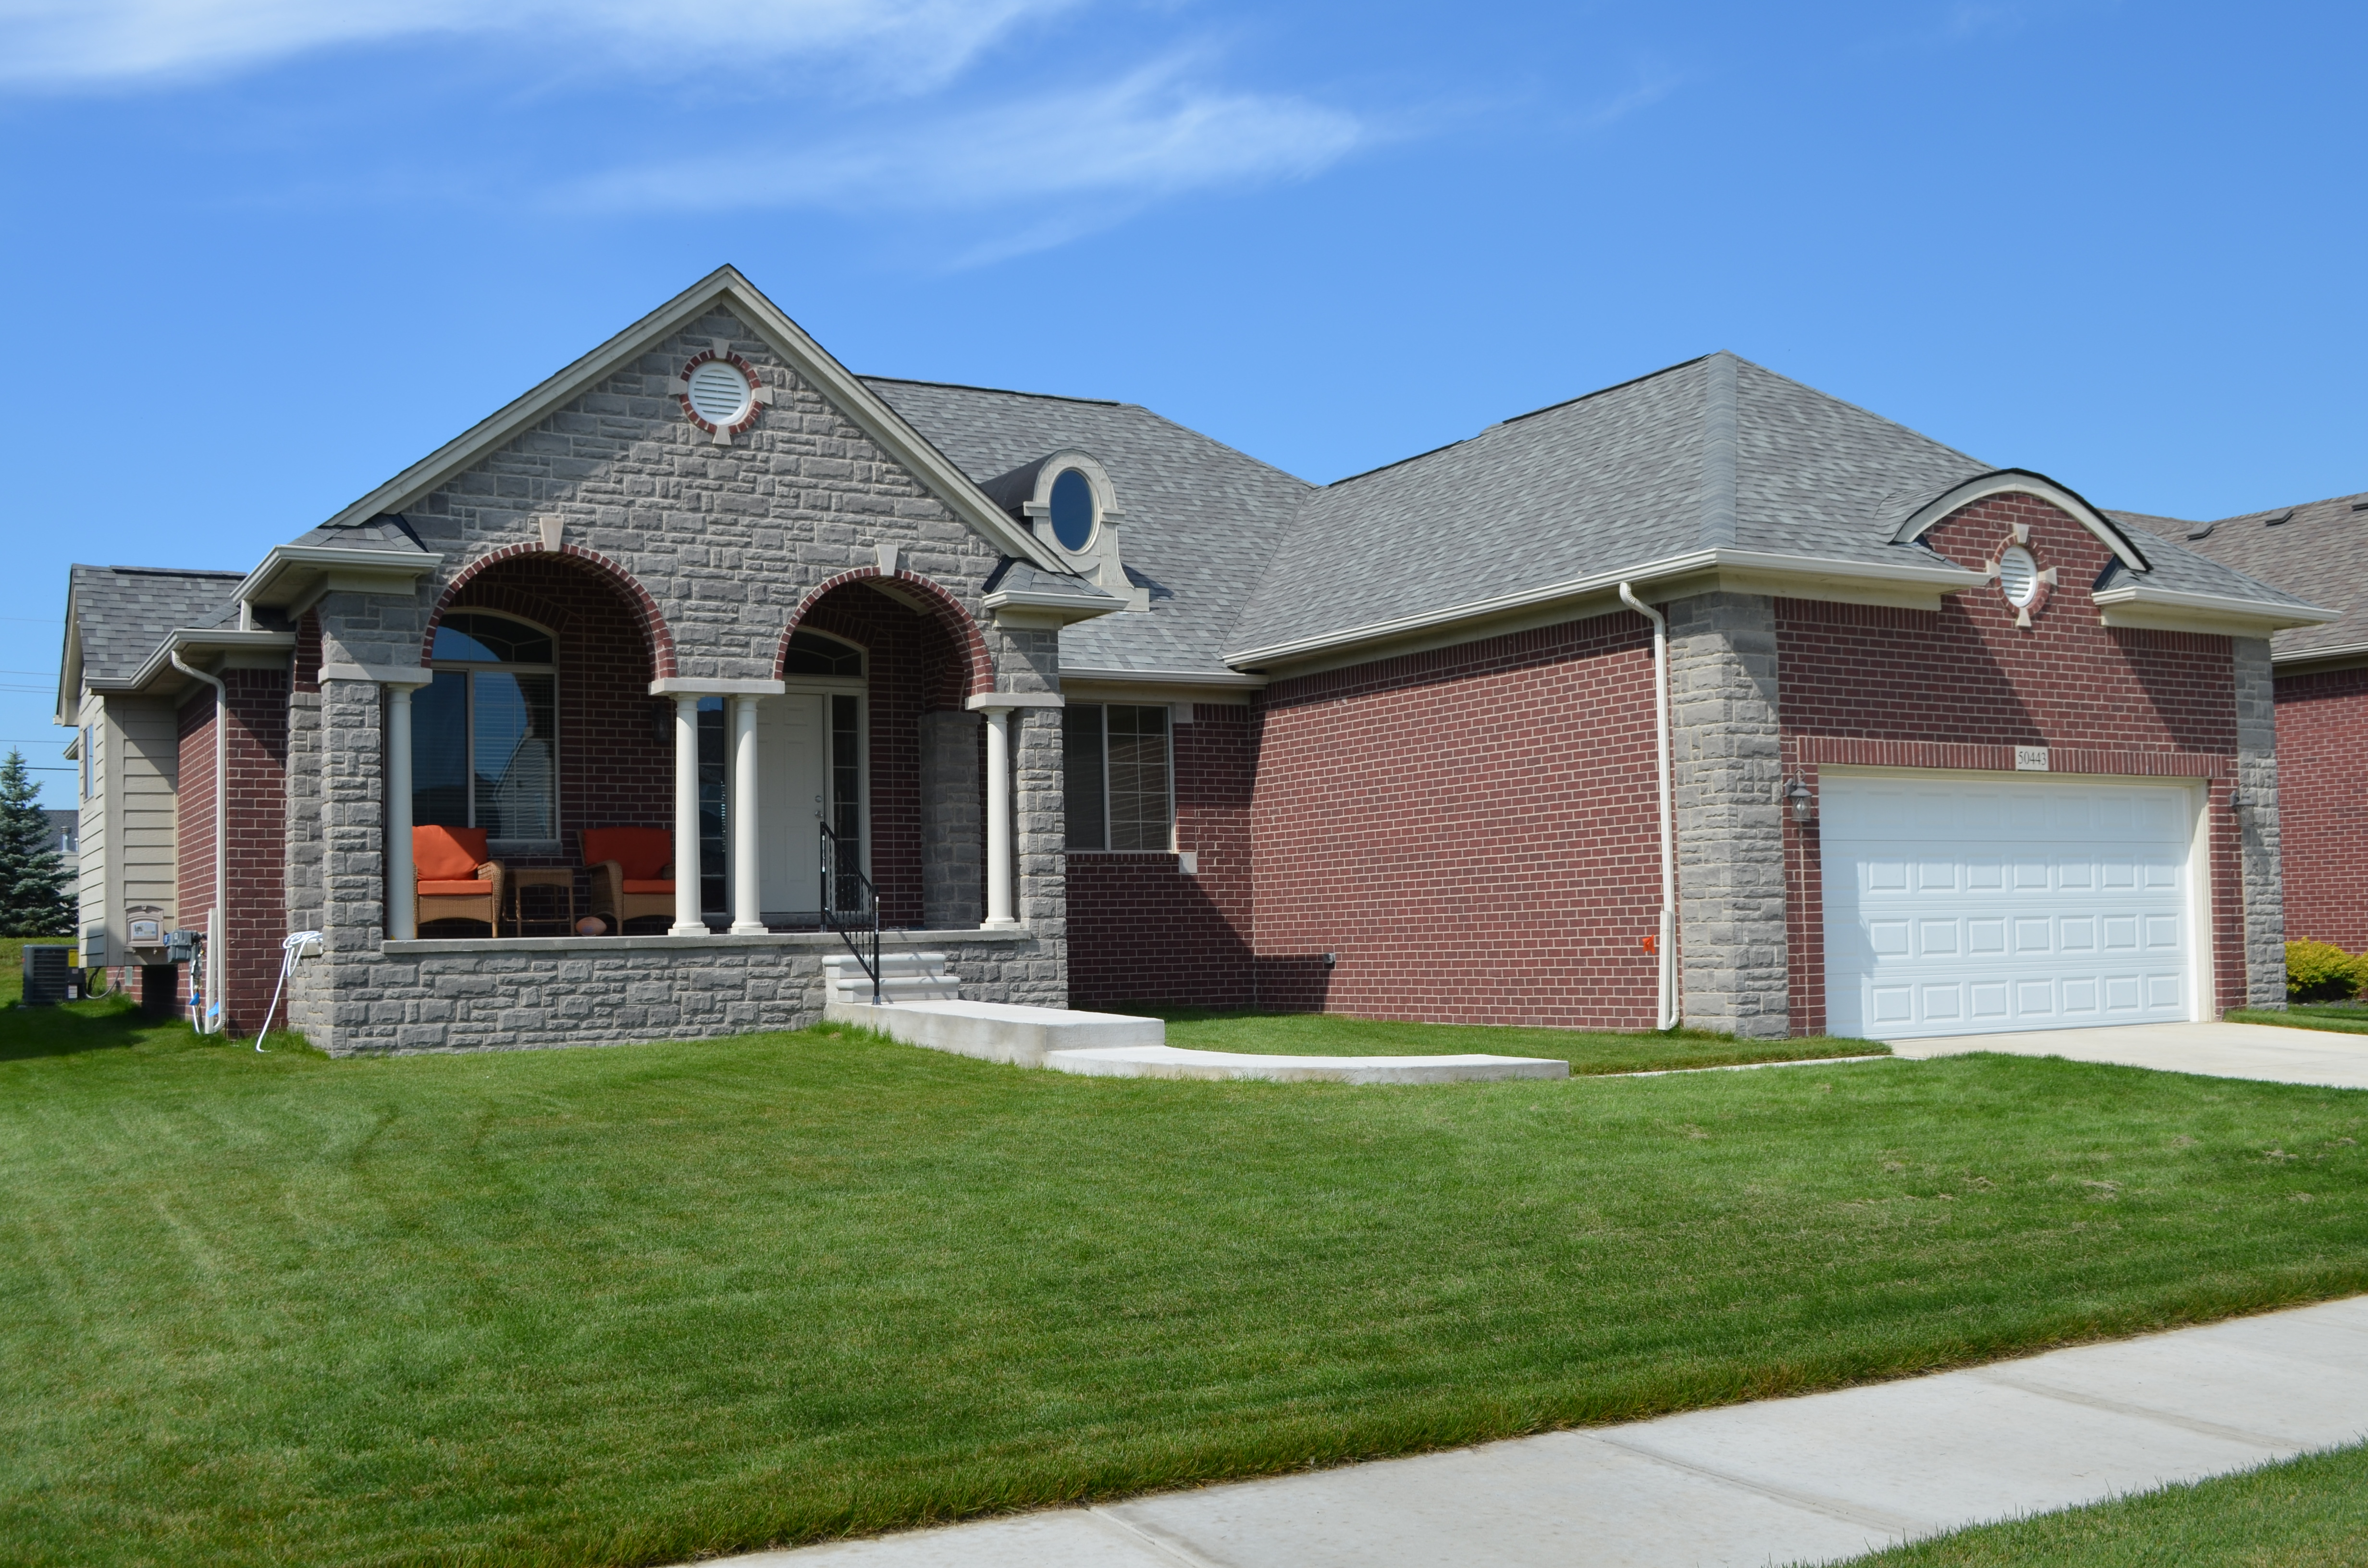 New Homes For Sale, Chestnut R.